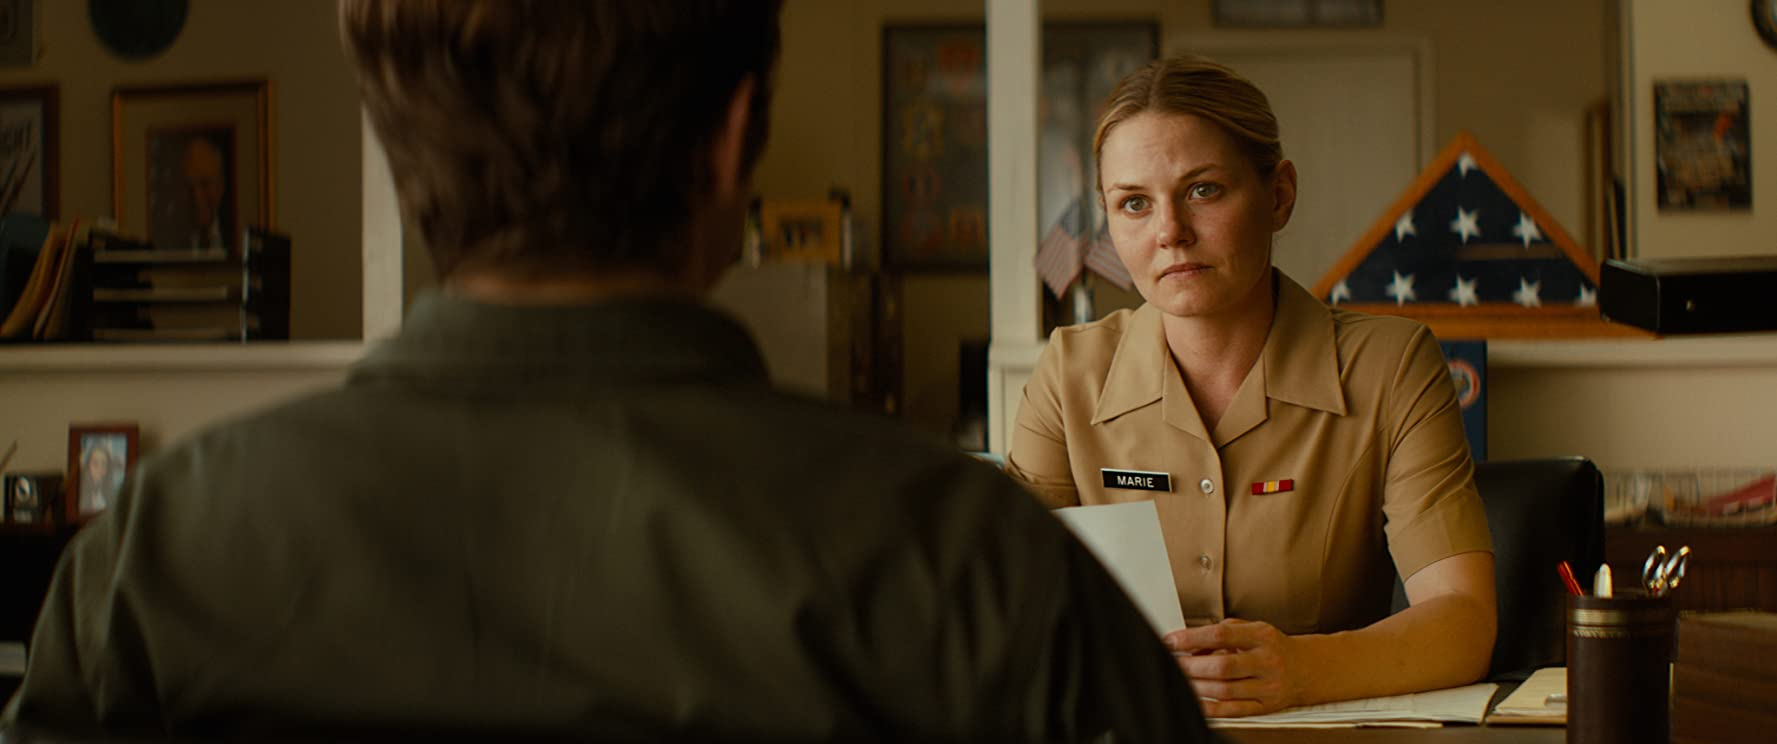 Jennifer Morrison in Sun Dogs (2017)